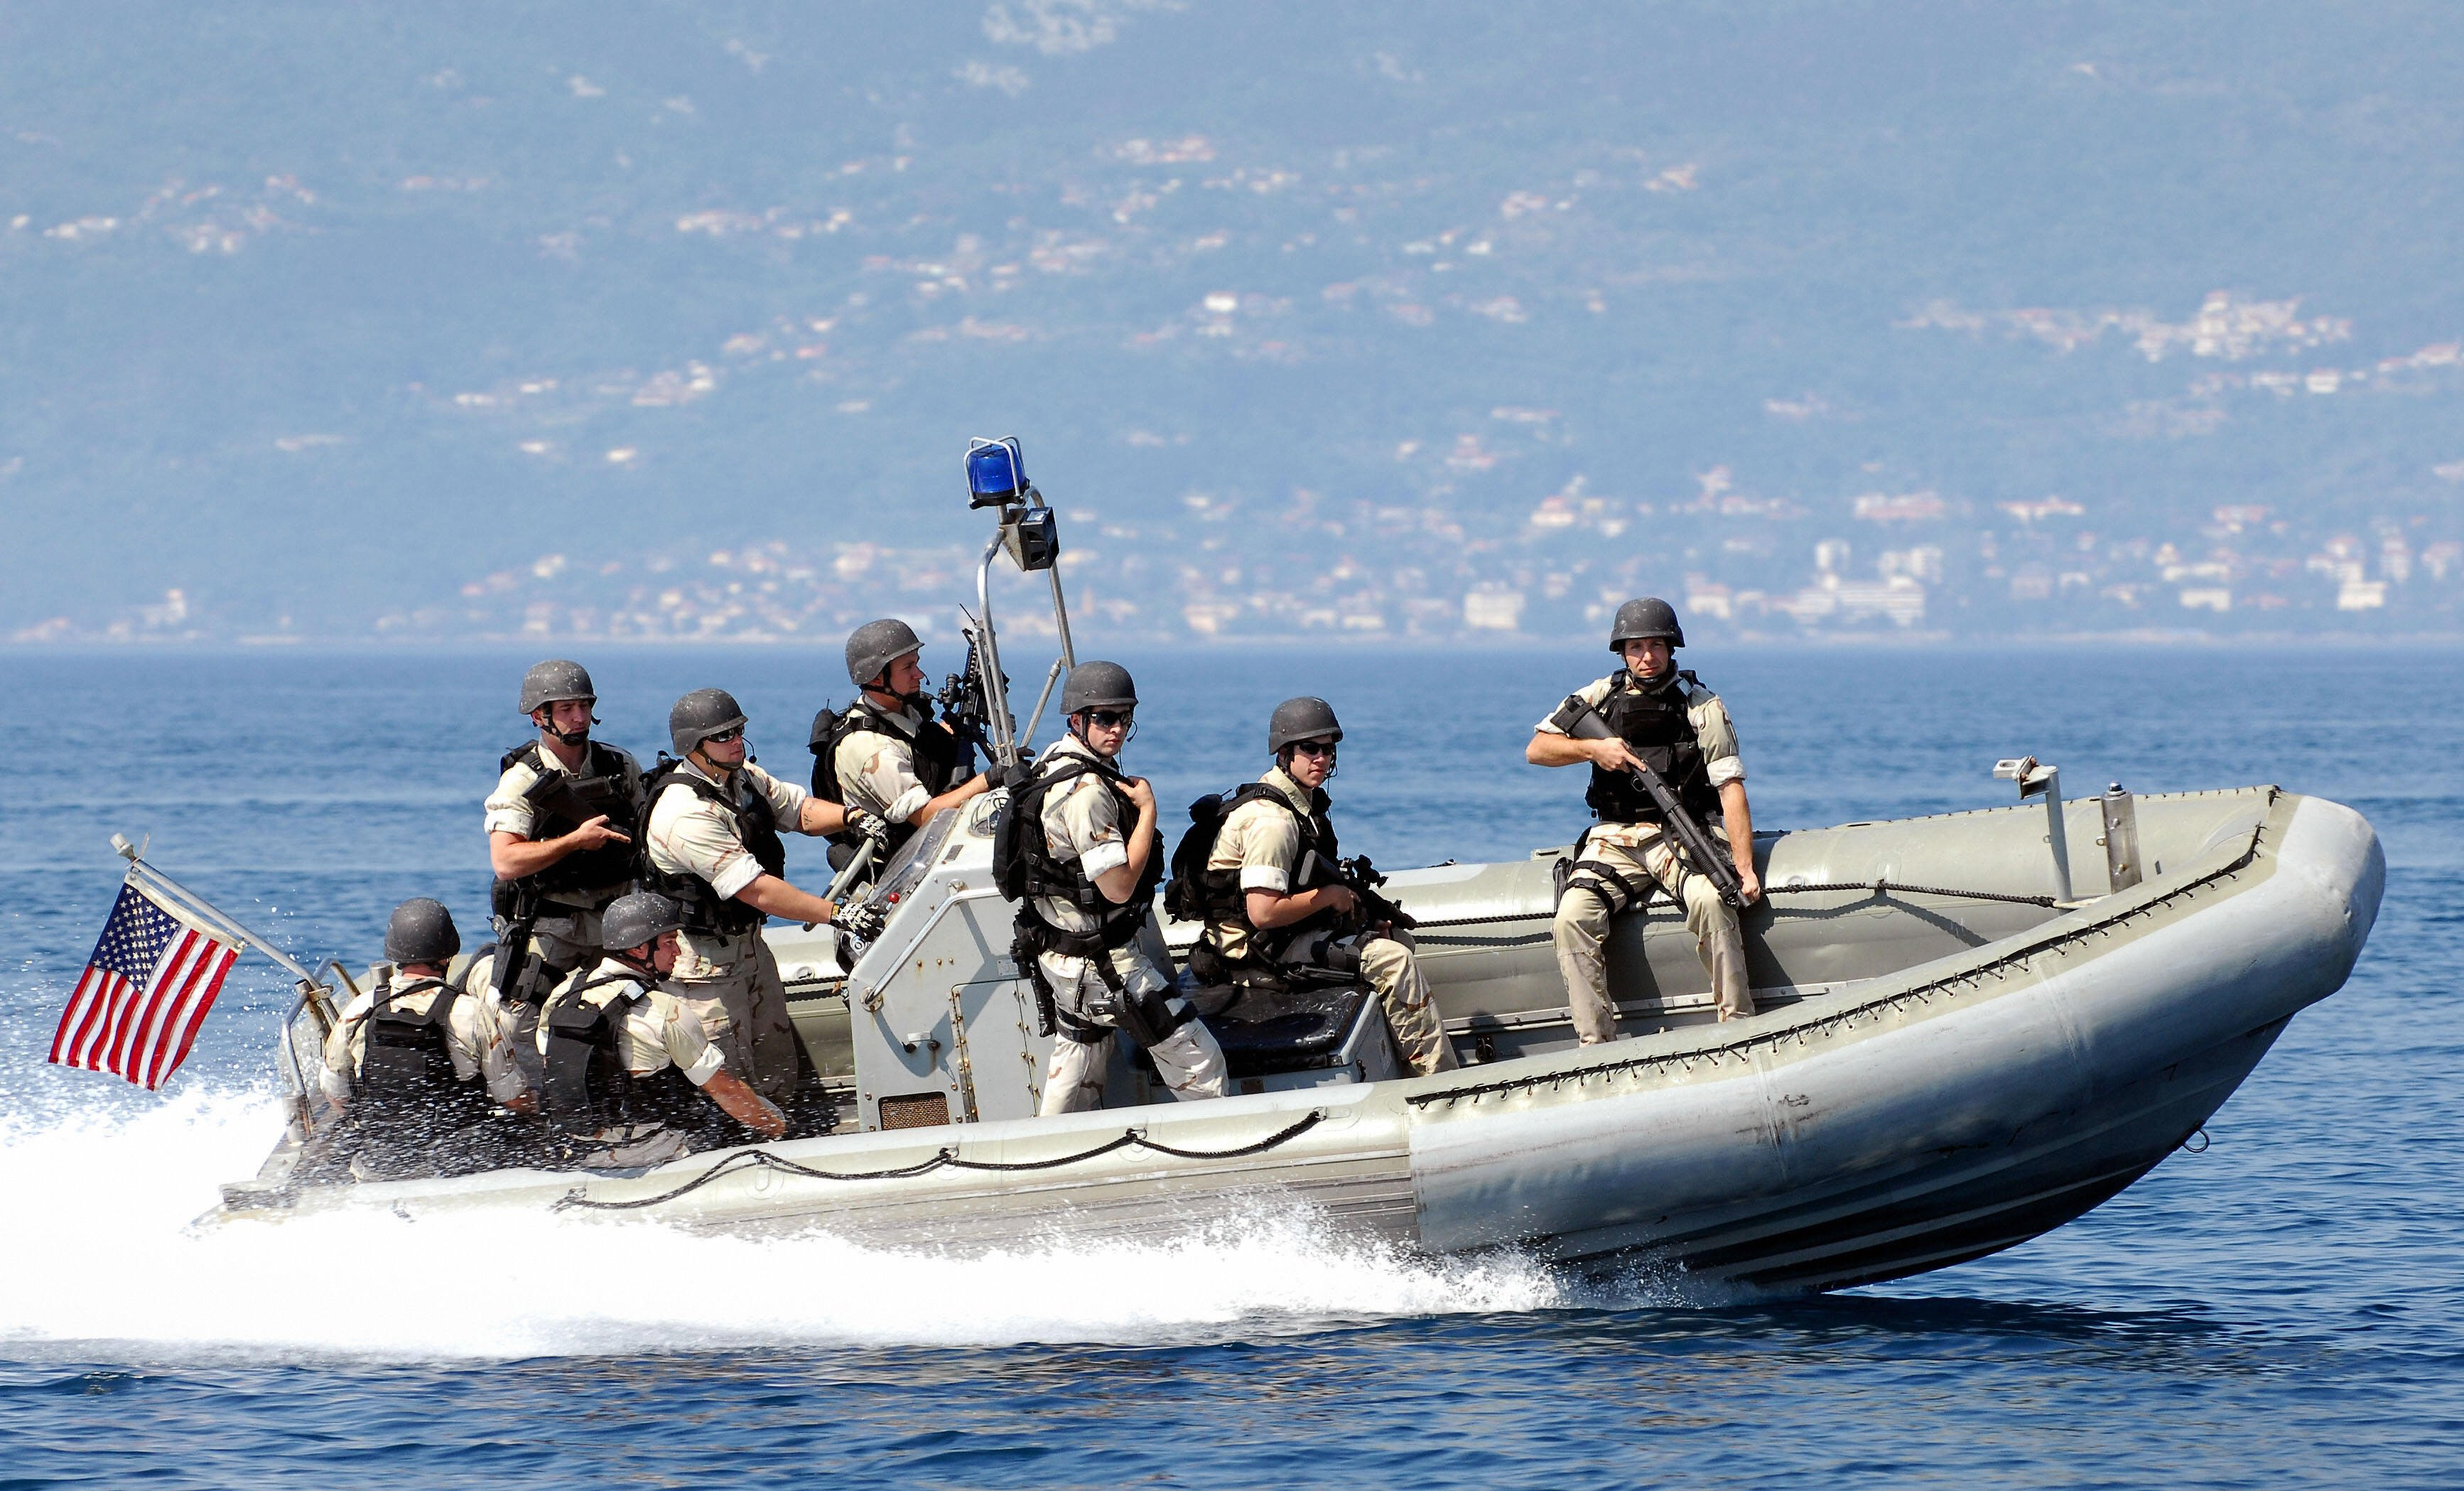 Members of seven countries participate in an exercise known as Adriatic Shield as part of the Proliferation Security Initiative in the waters near the Croatian port city of Rijeka on May 13, 2008. (Photo credit: Stringer/AFP/Getty Images)